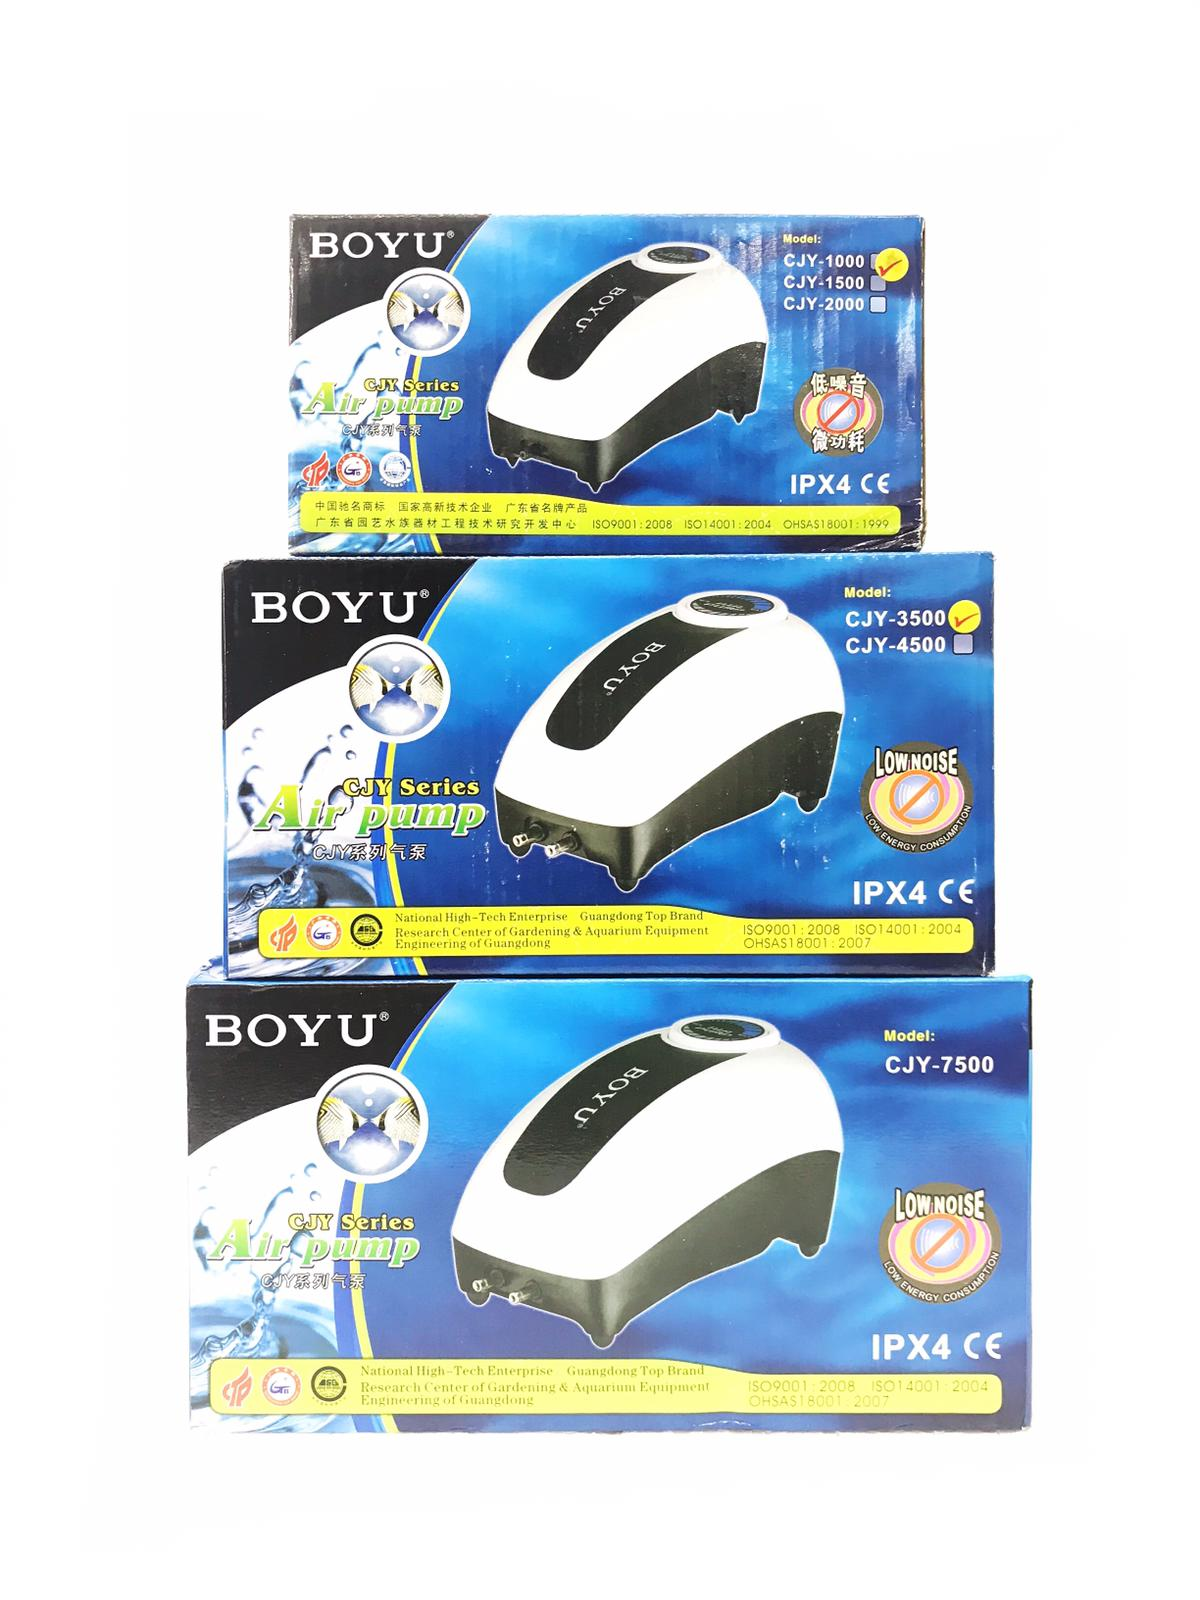 Boyu Cyj Series Air Pump